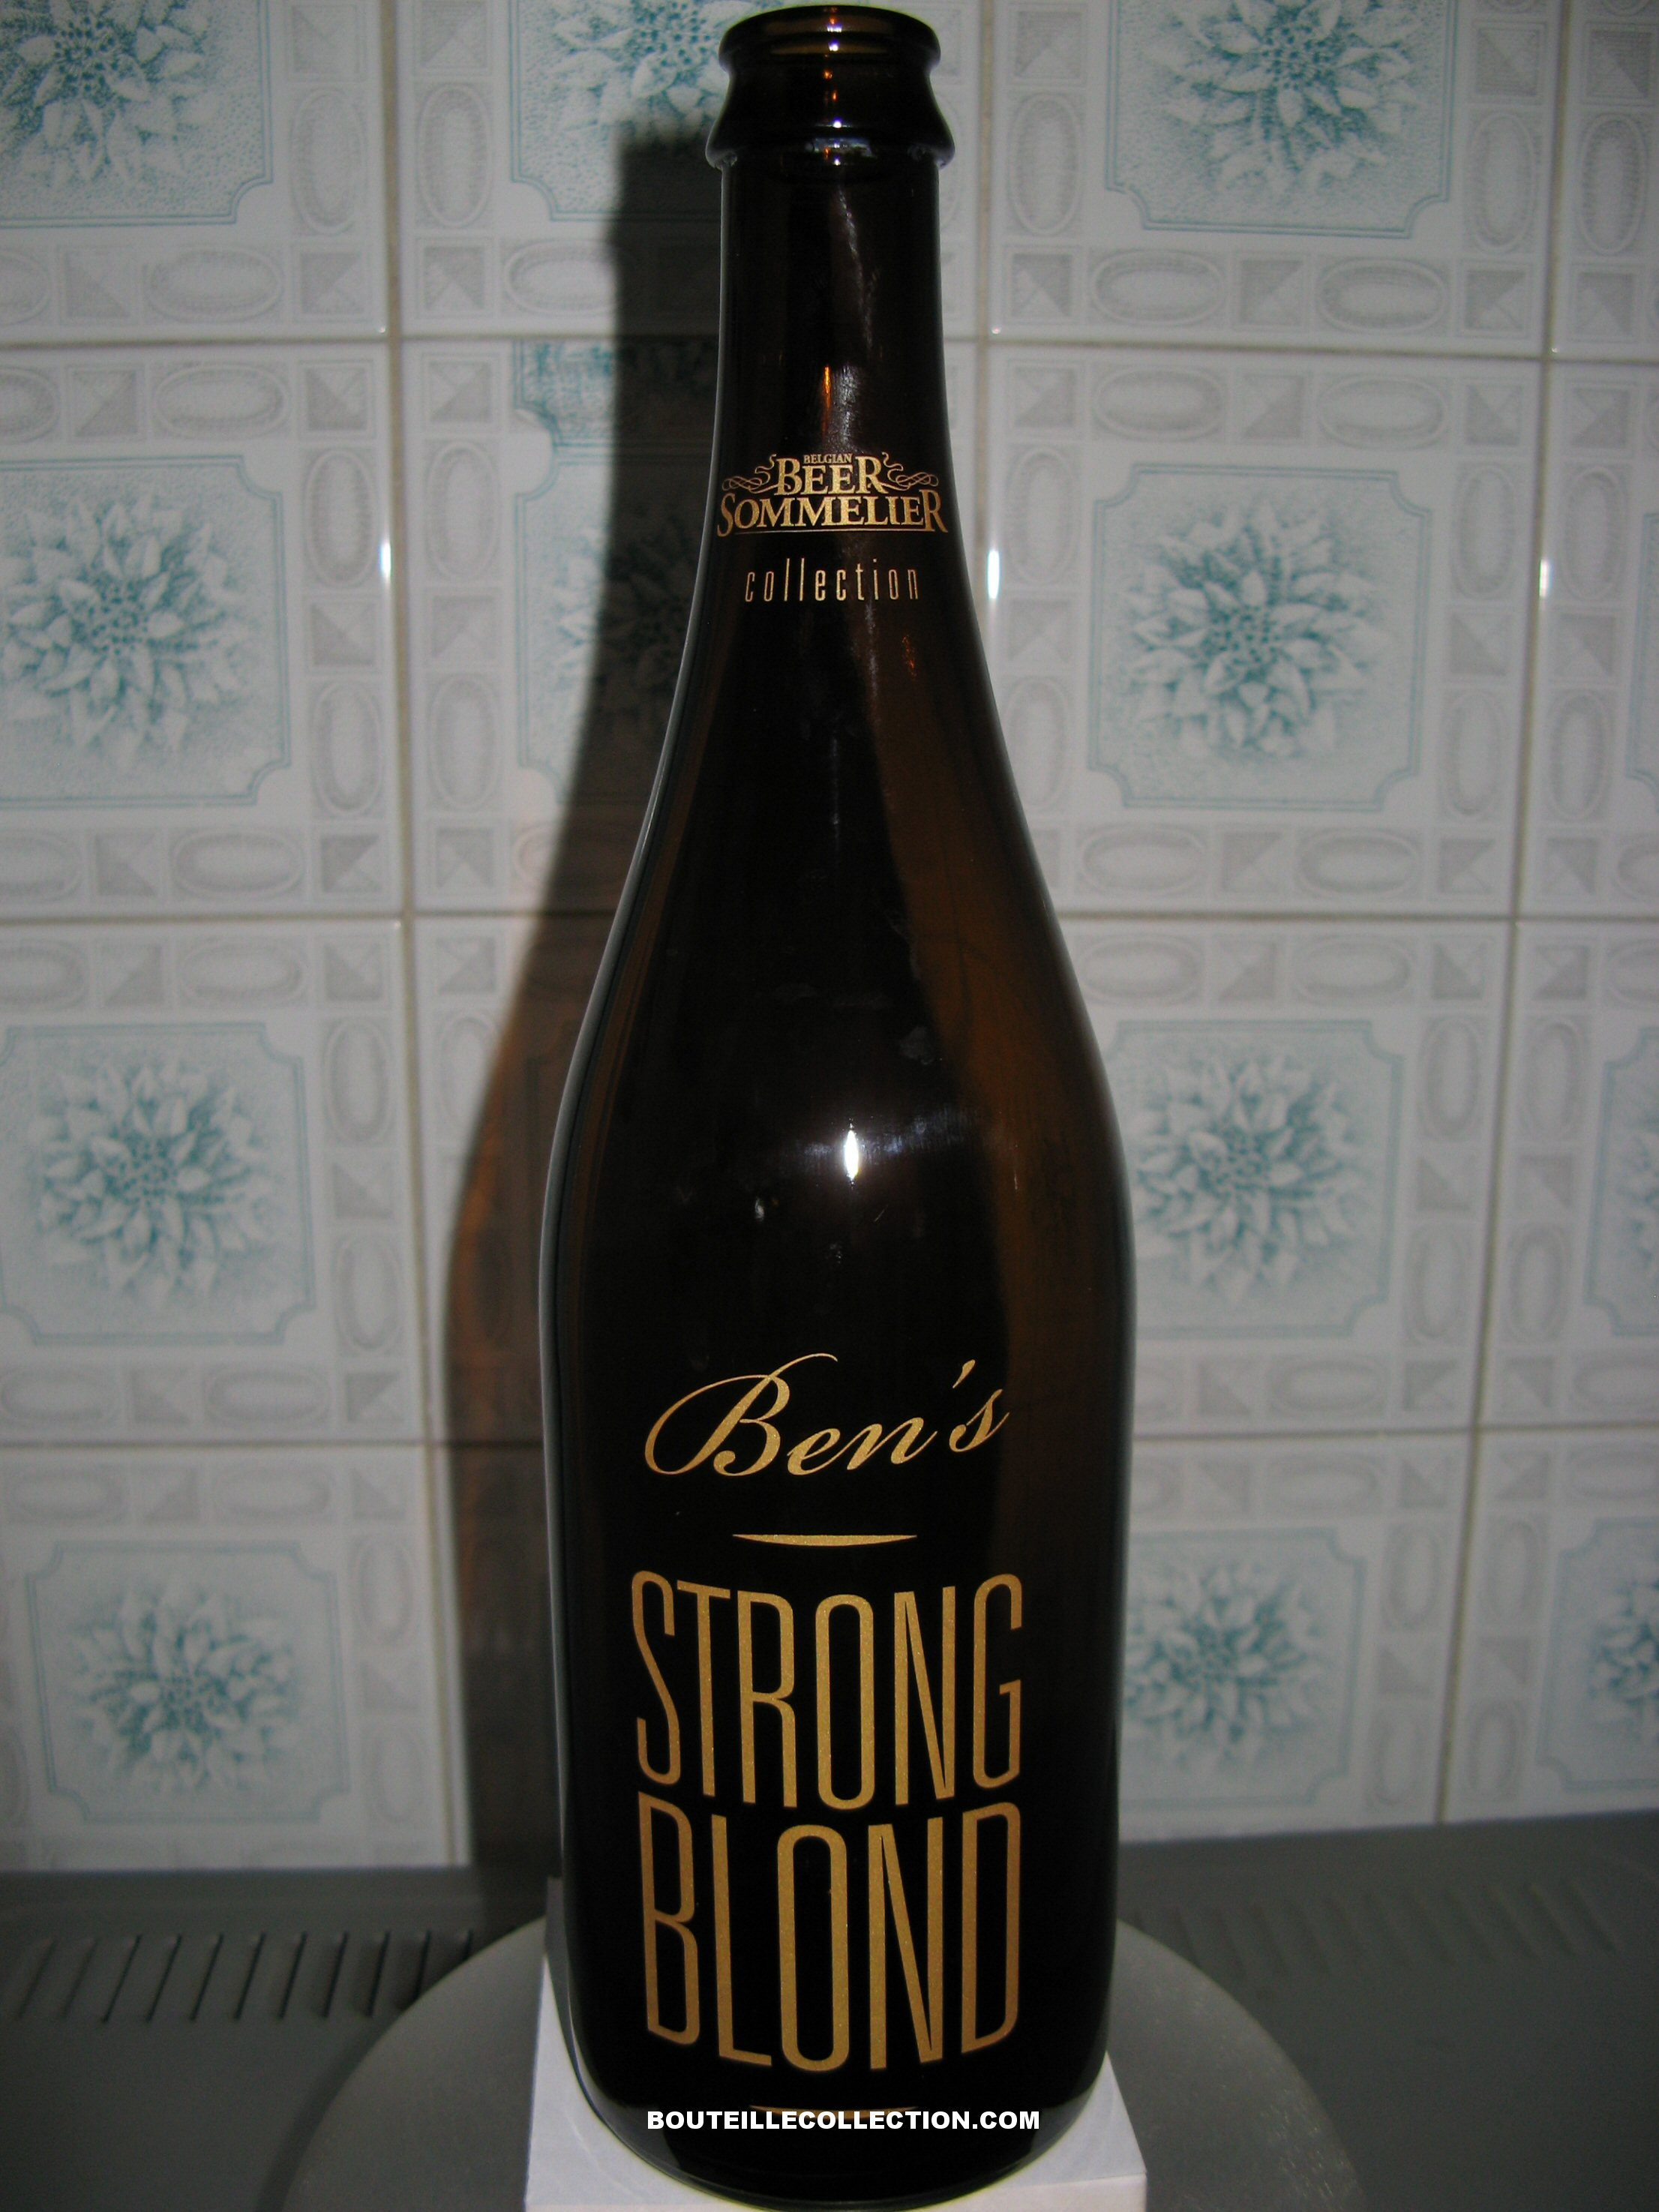 BEER SOMMELIER STRONG BLOND 75CL B OK .JPG